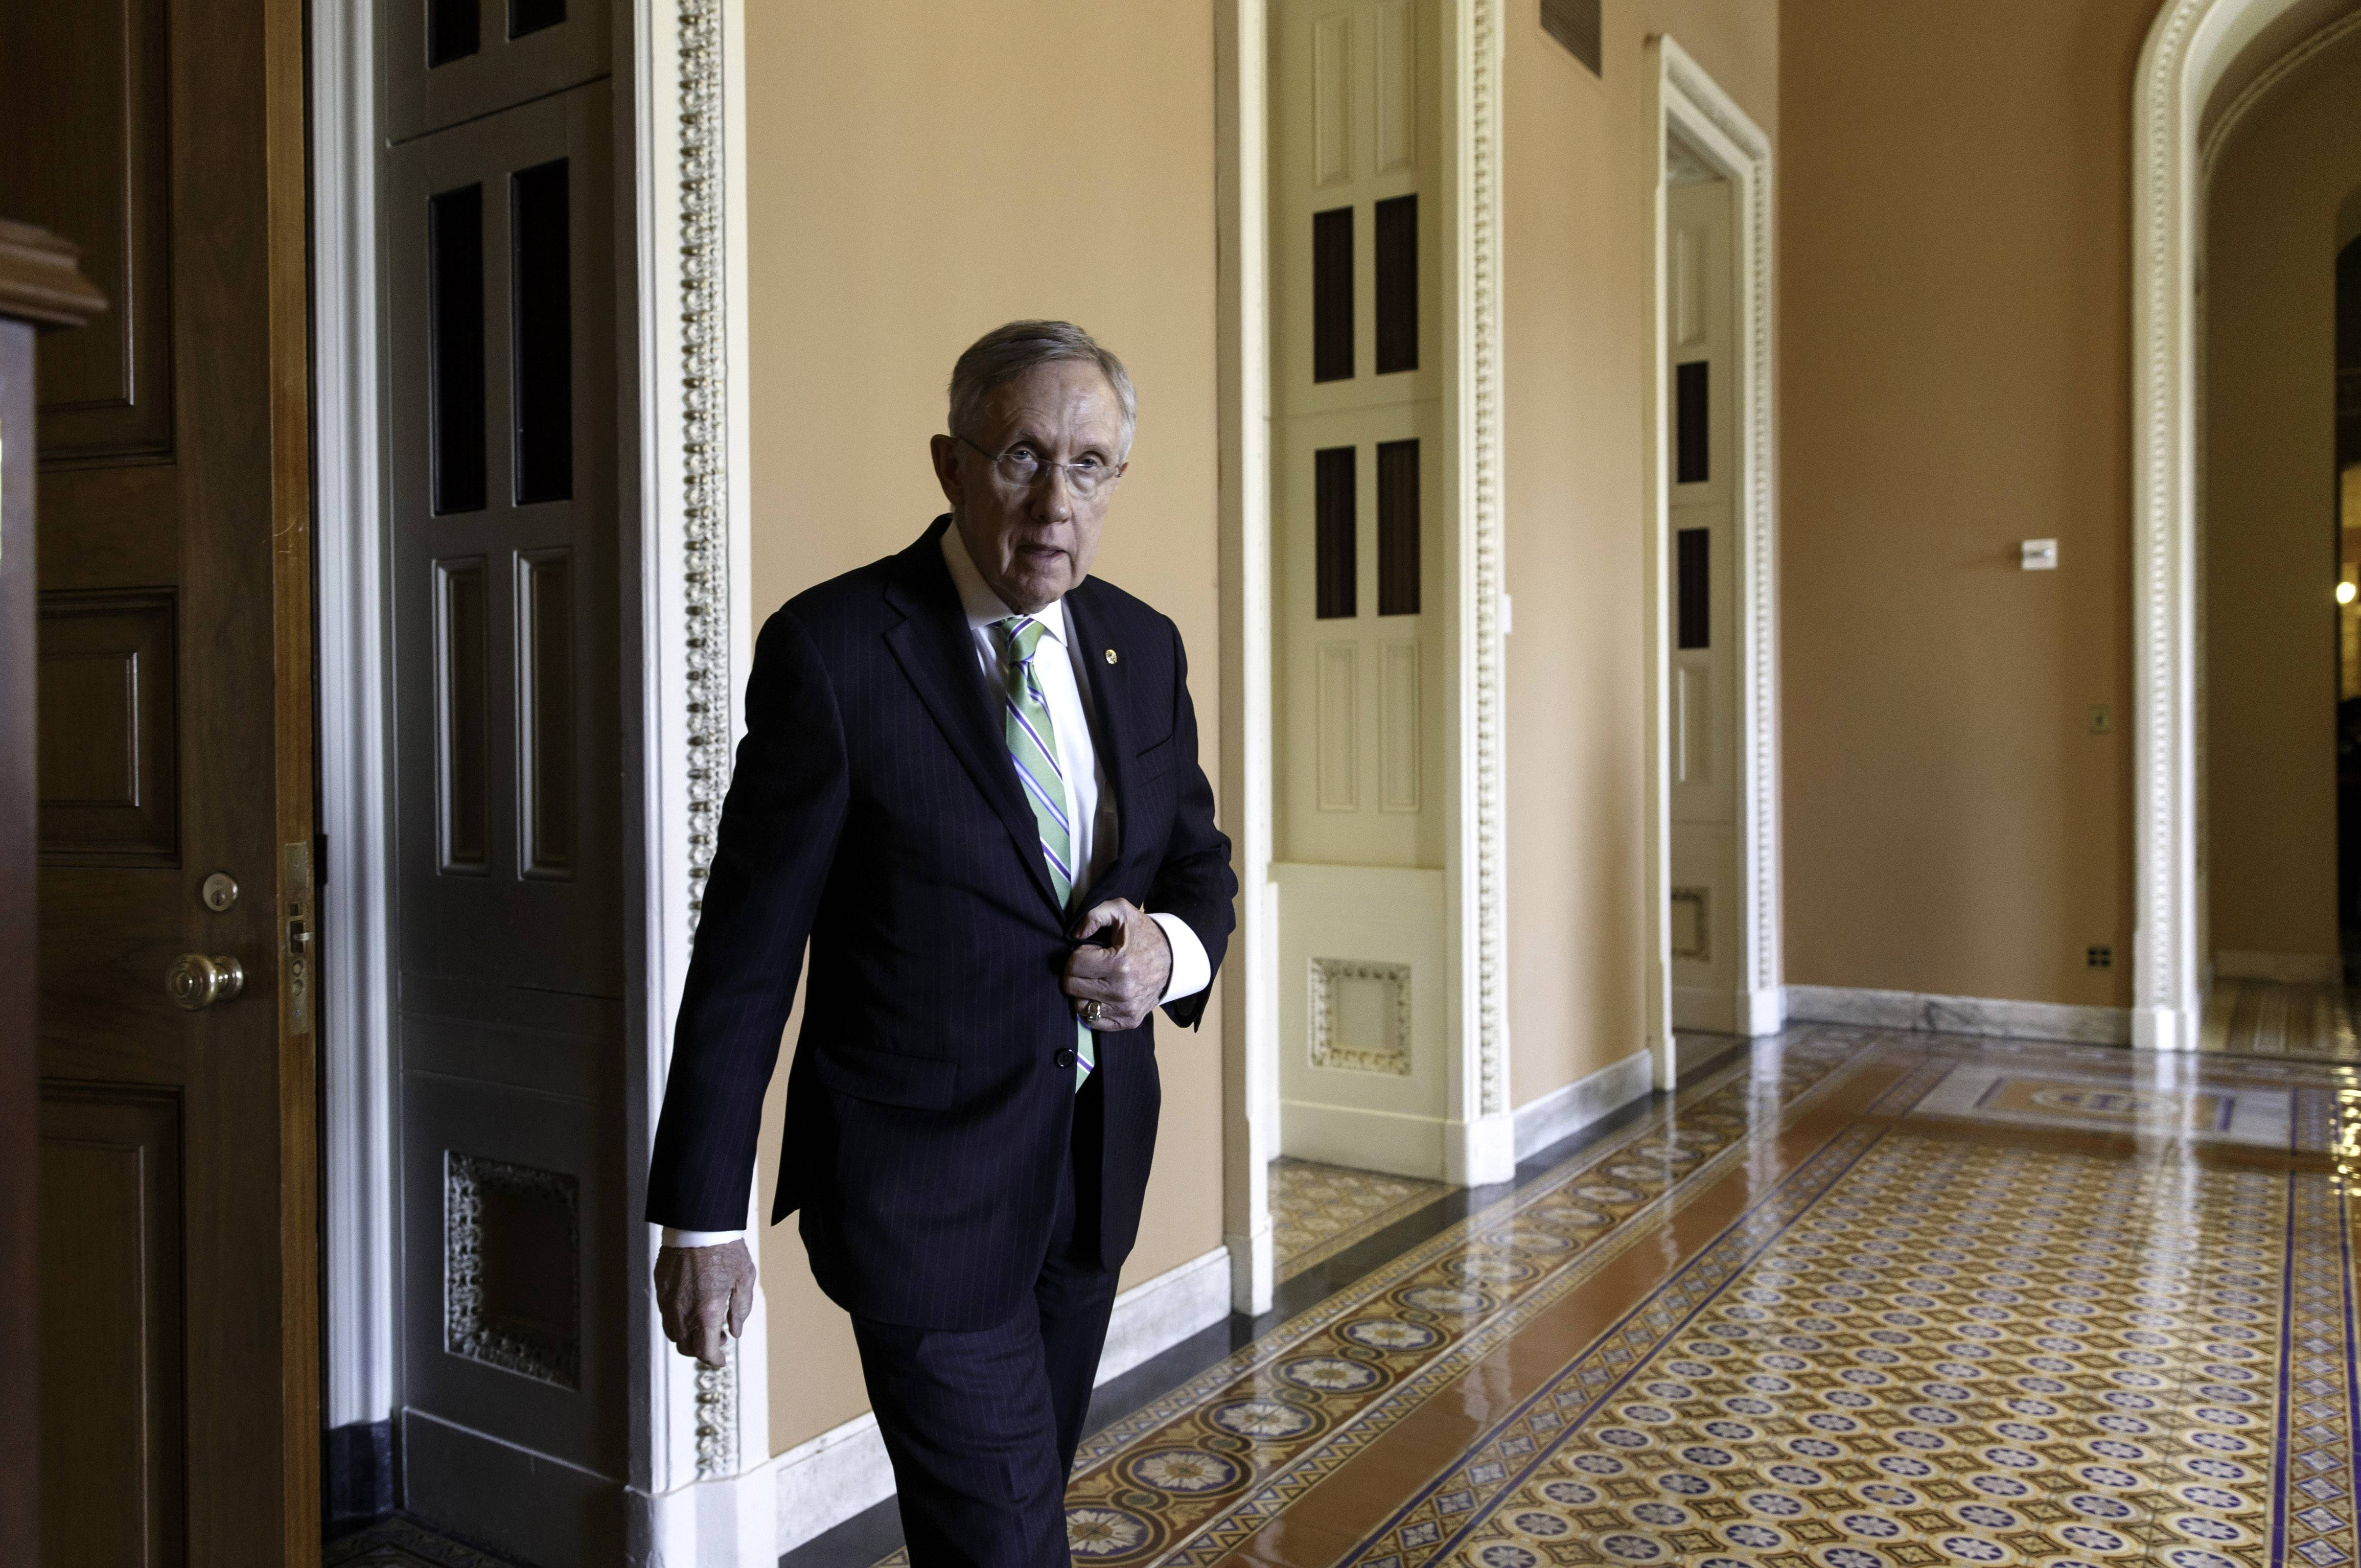 Senate Majority Leader Harry Reid of Nevada on his way to speak to reporters Tuesday on Capitol Hill in Washington.